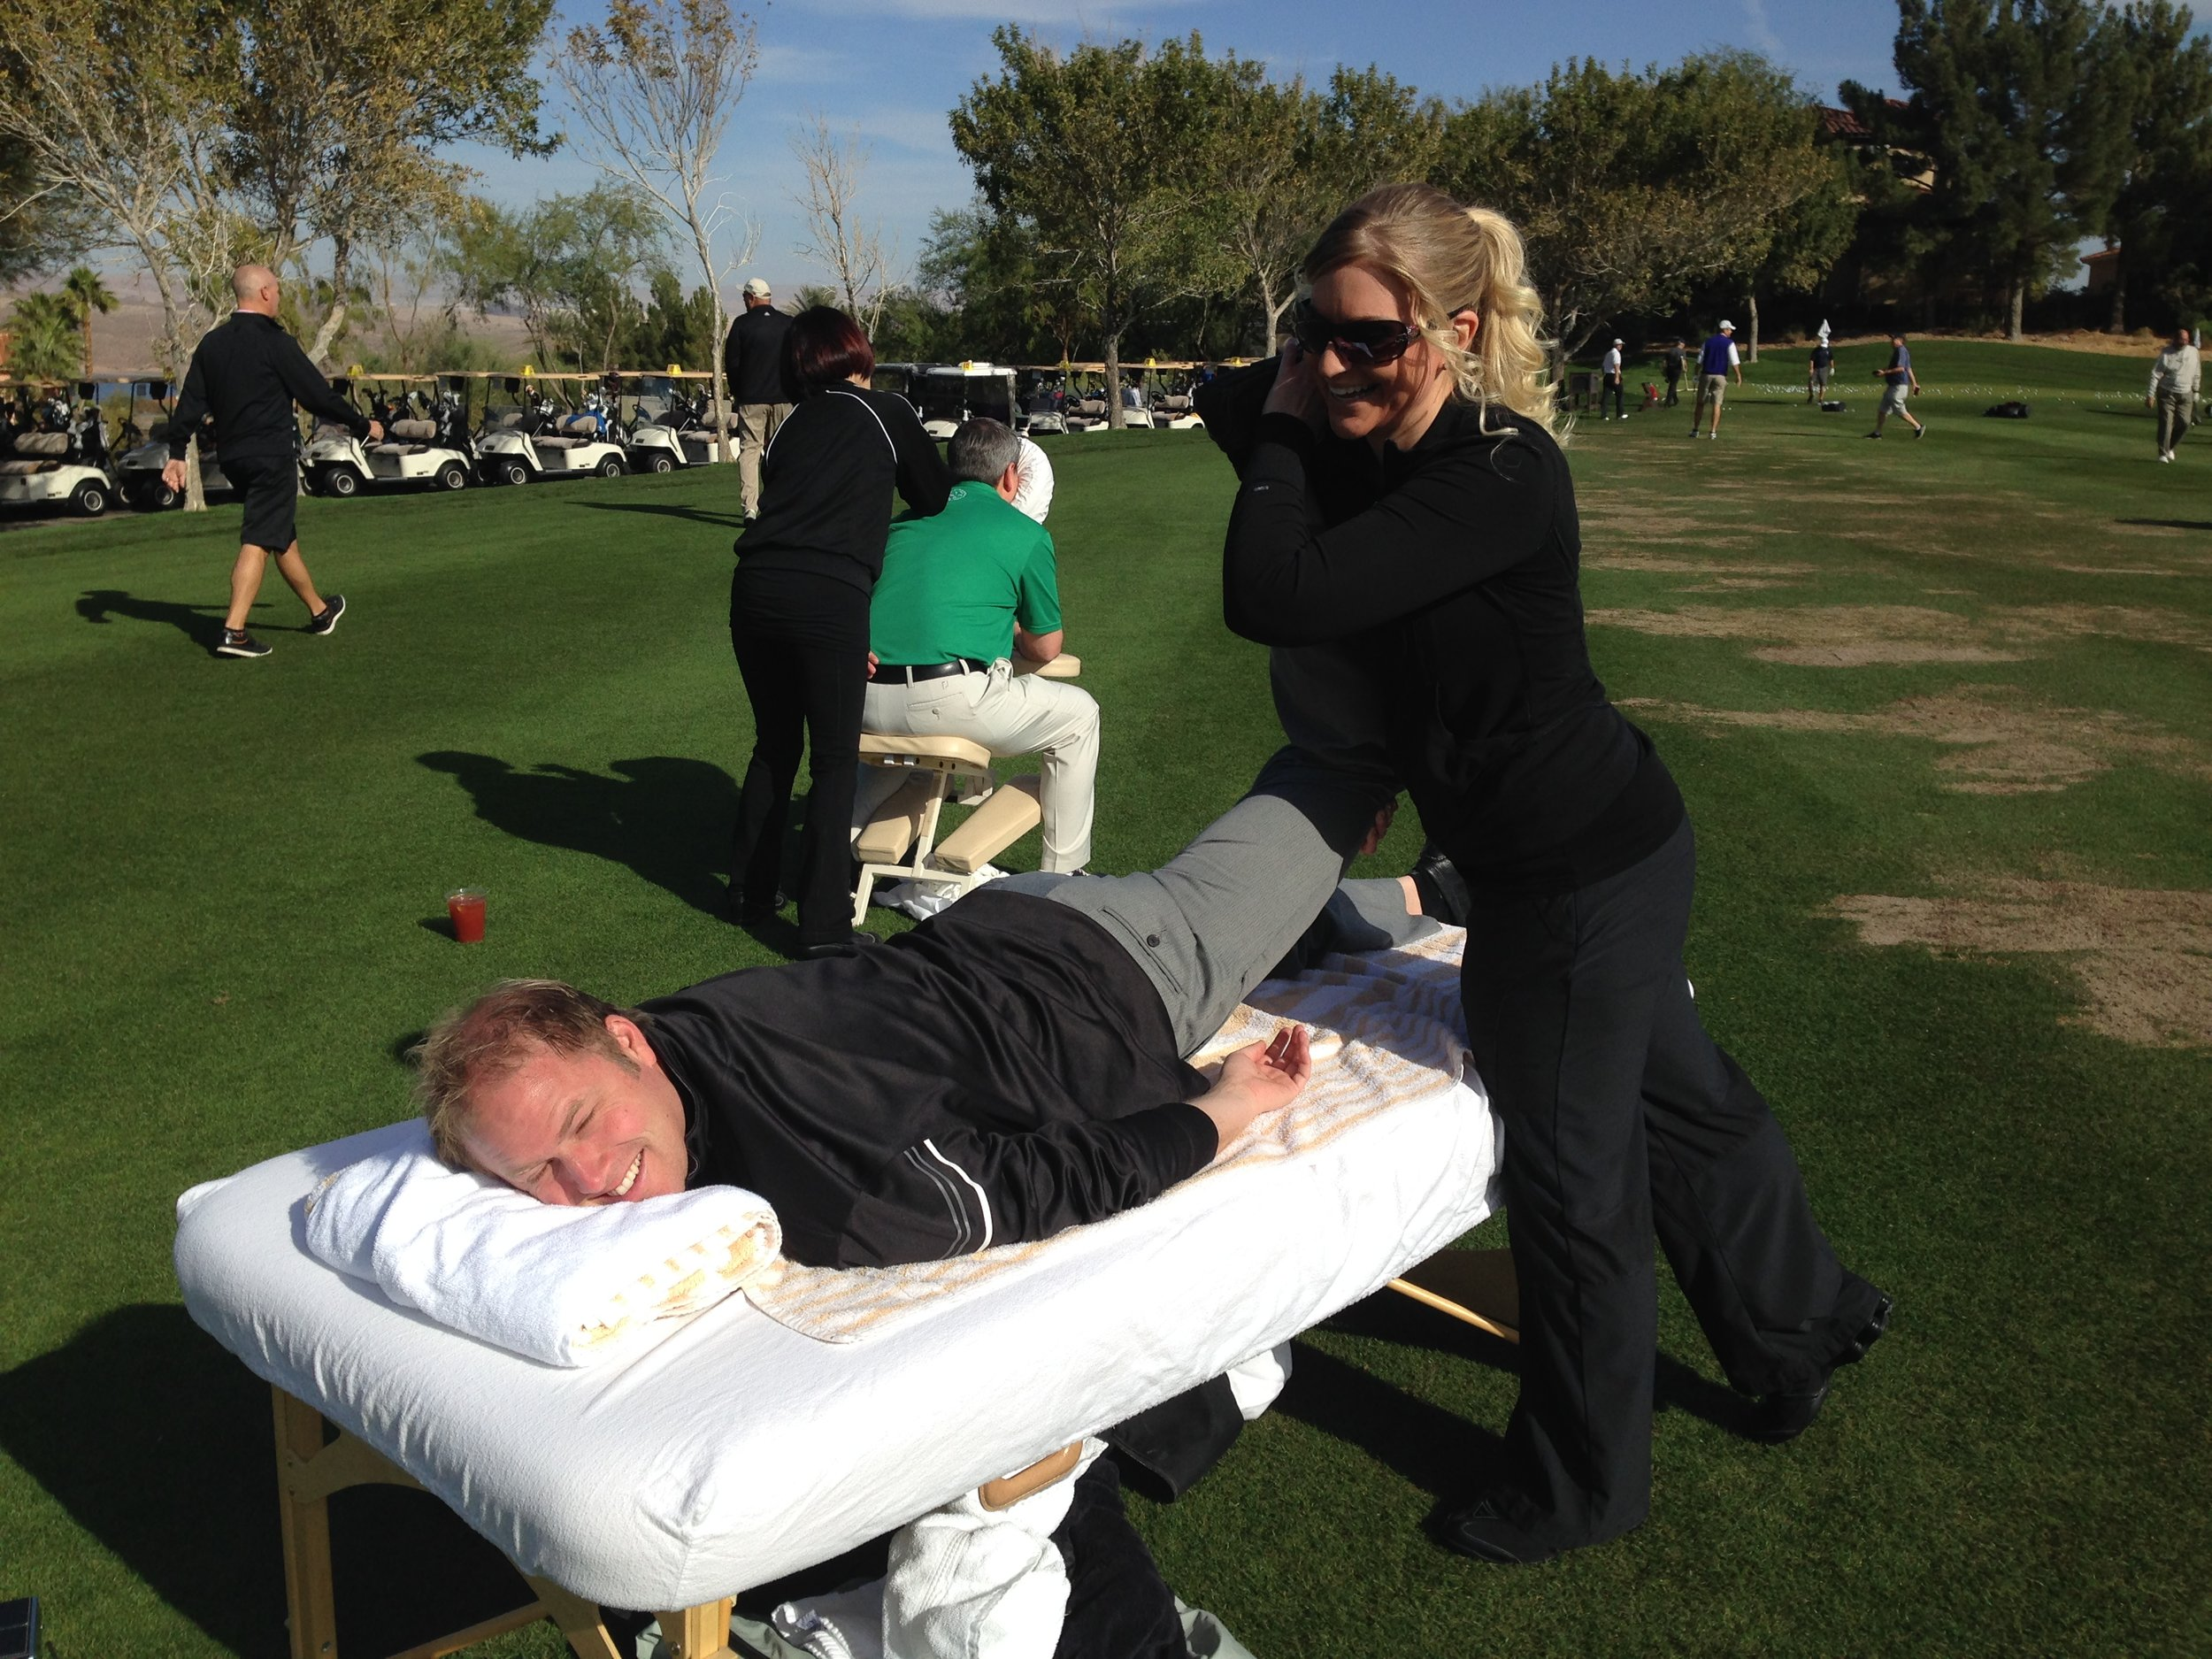 Stretching & Massage on the range is a nice touch that is appreciated by the participants.